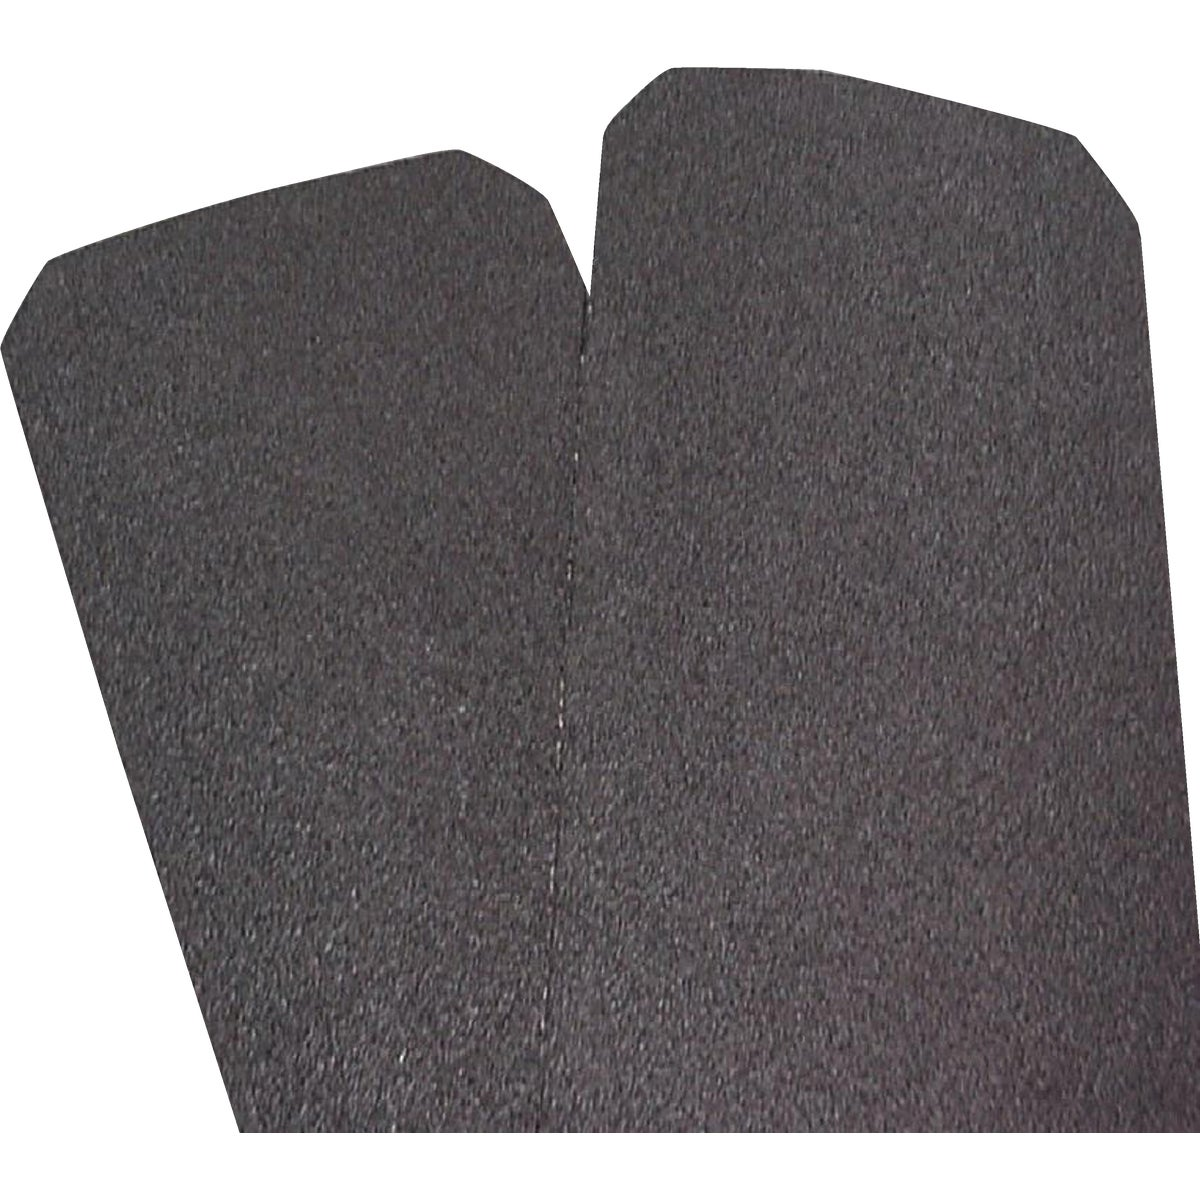 100G FLOOR SANDING SHEET - 002-830100 by Virginia Abrasives